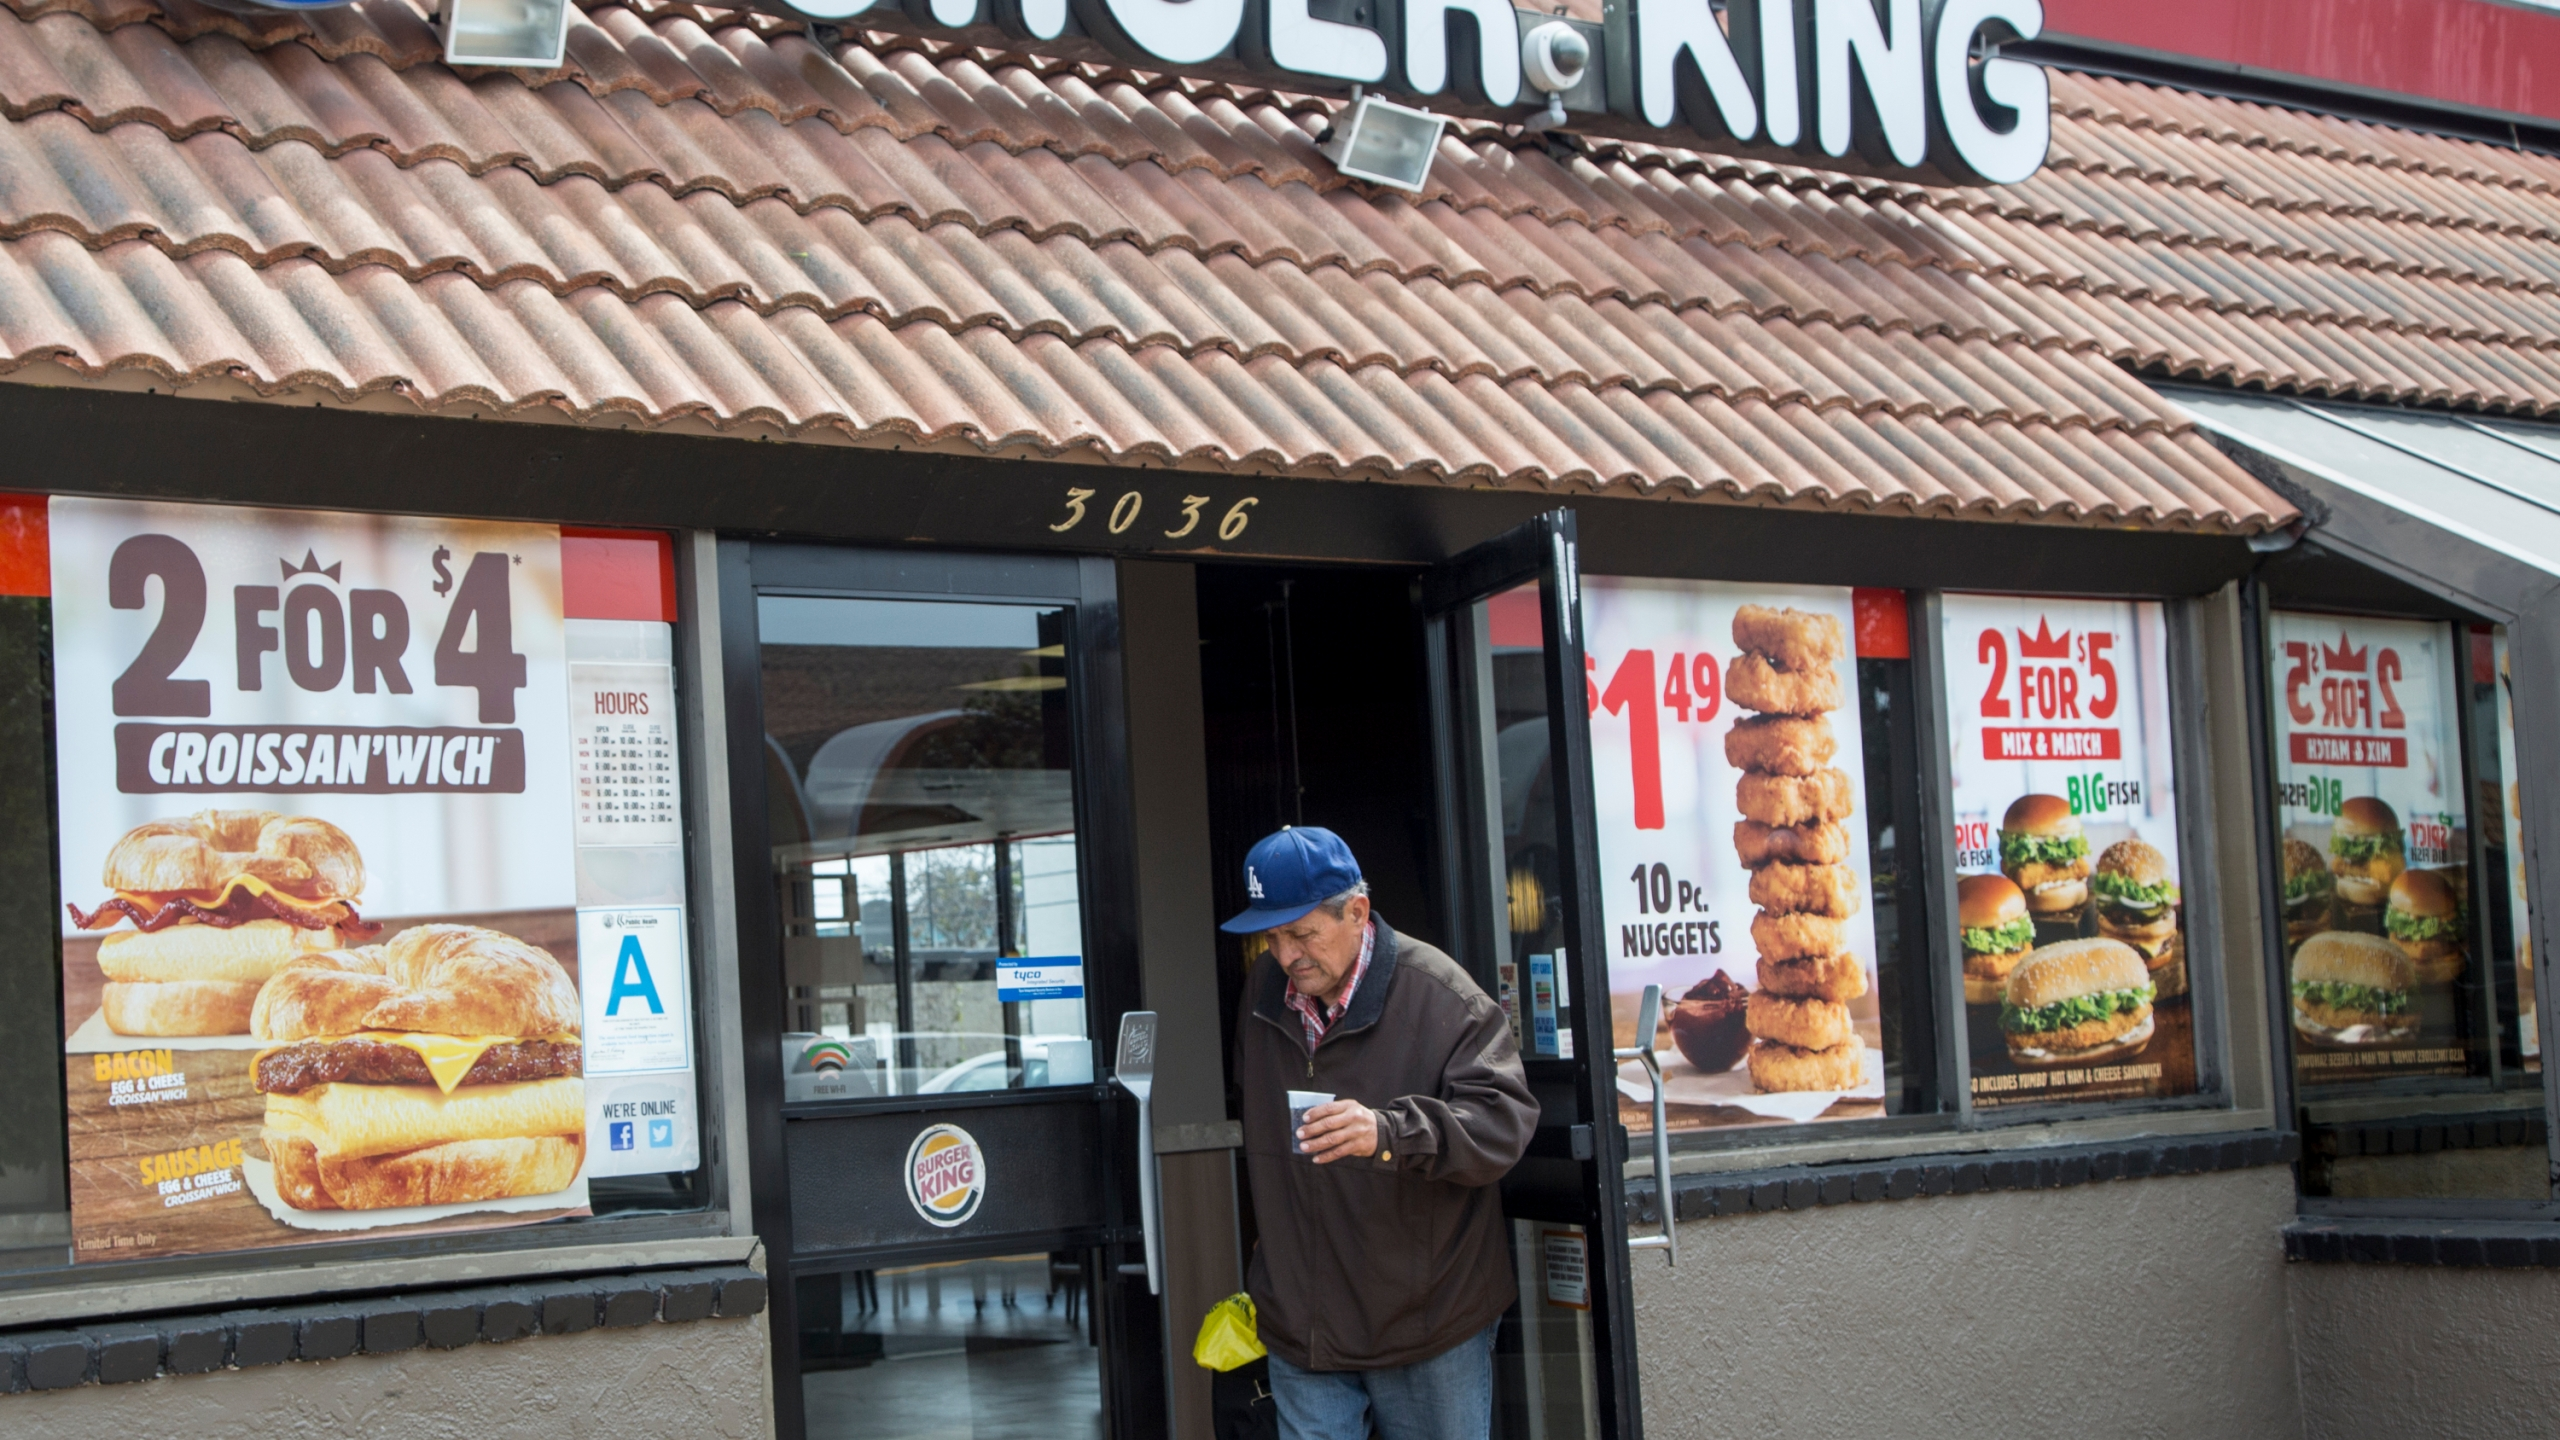 Earnings Burger King parent Restaurant Brands Photo by Damian Dovarganes, AP Photo_286668